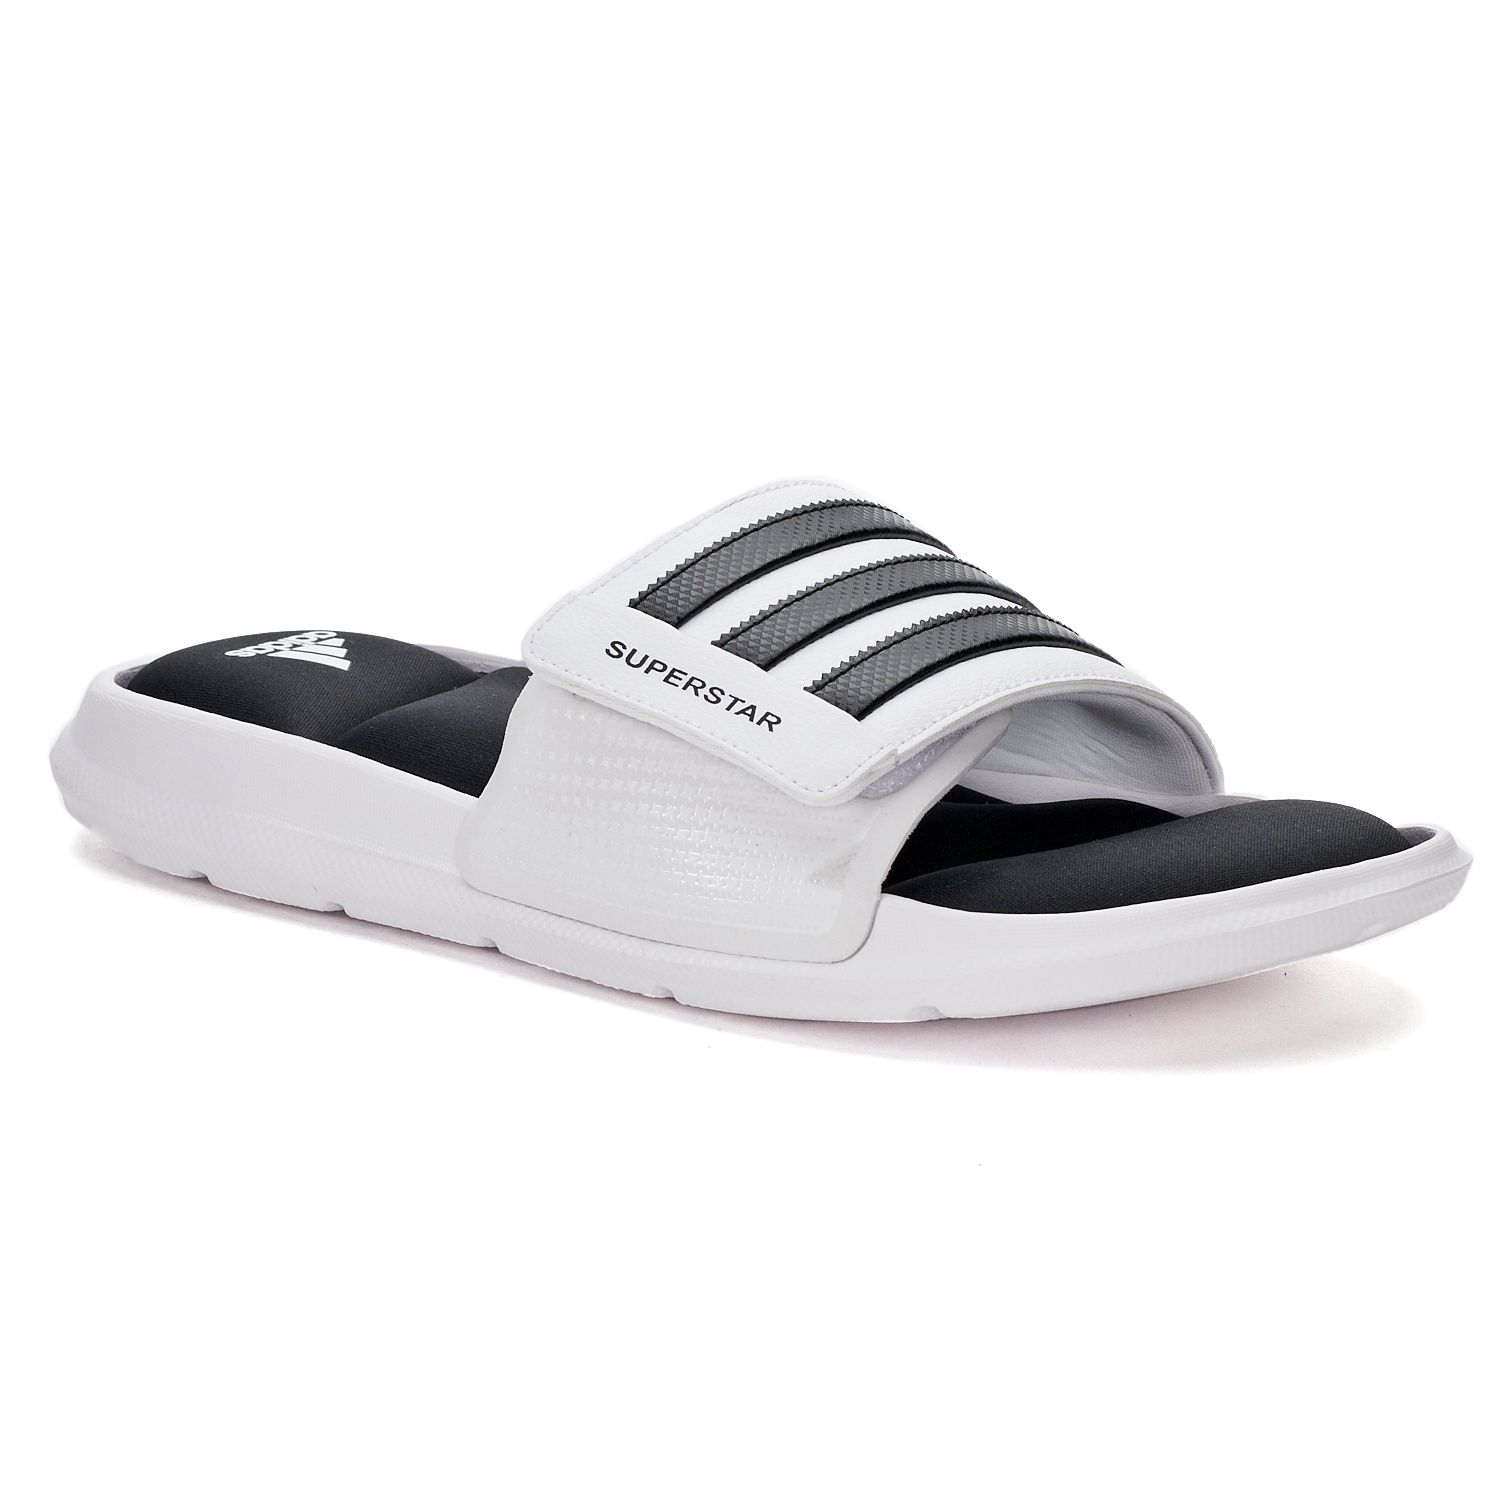 adidas Superstar 3G Men\u0027s Slide Sandals